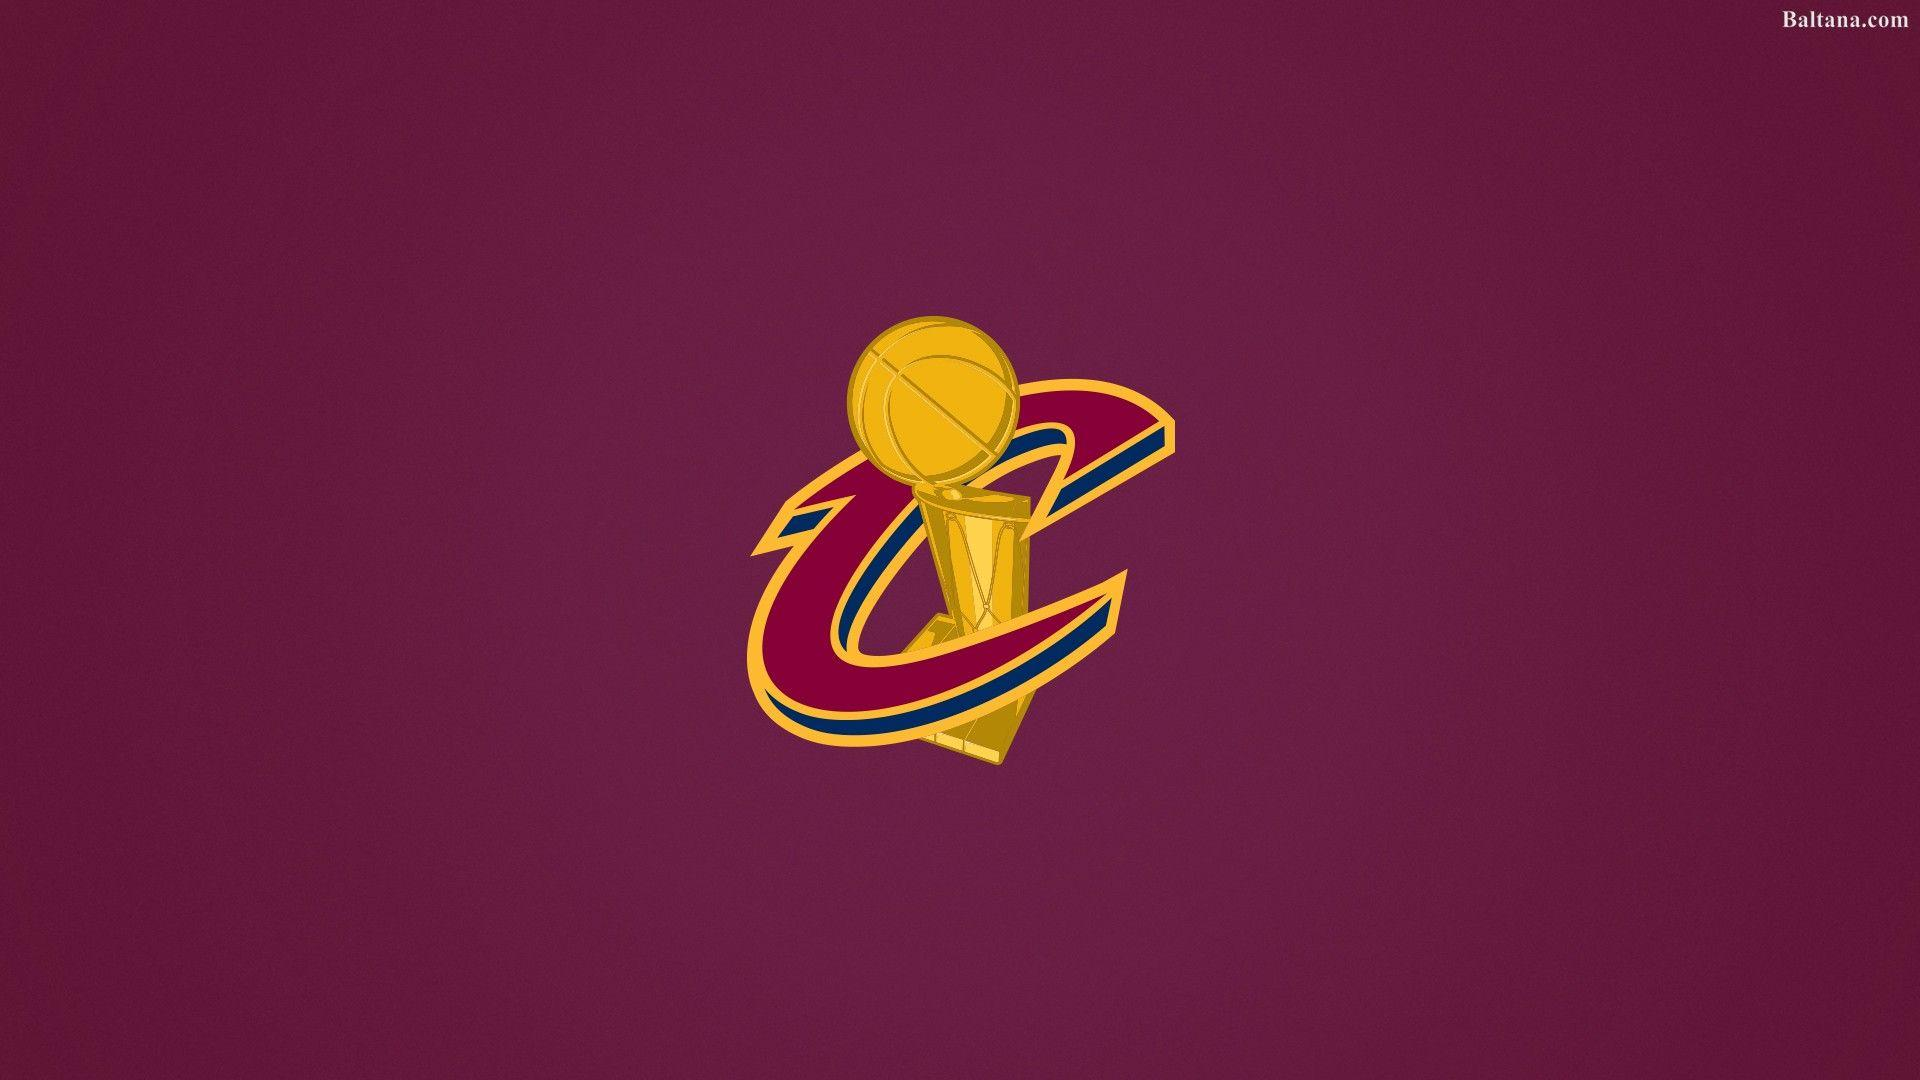 Cleveland Cavaliers Best HD Wallpapers 33446